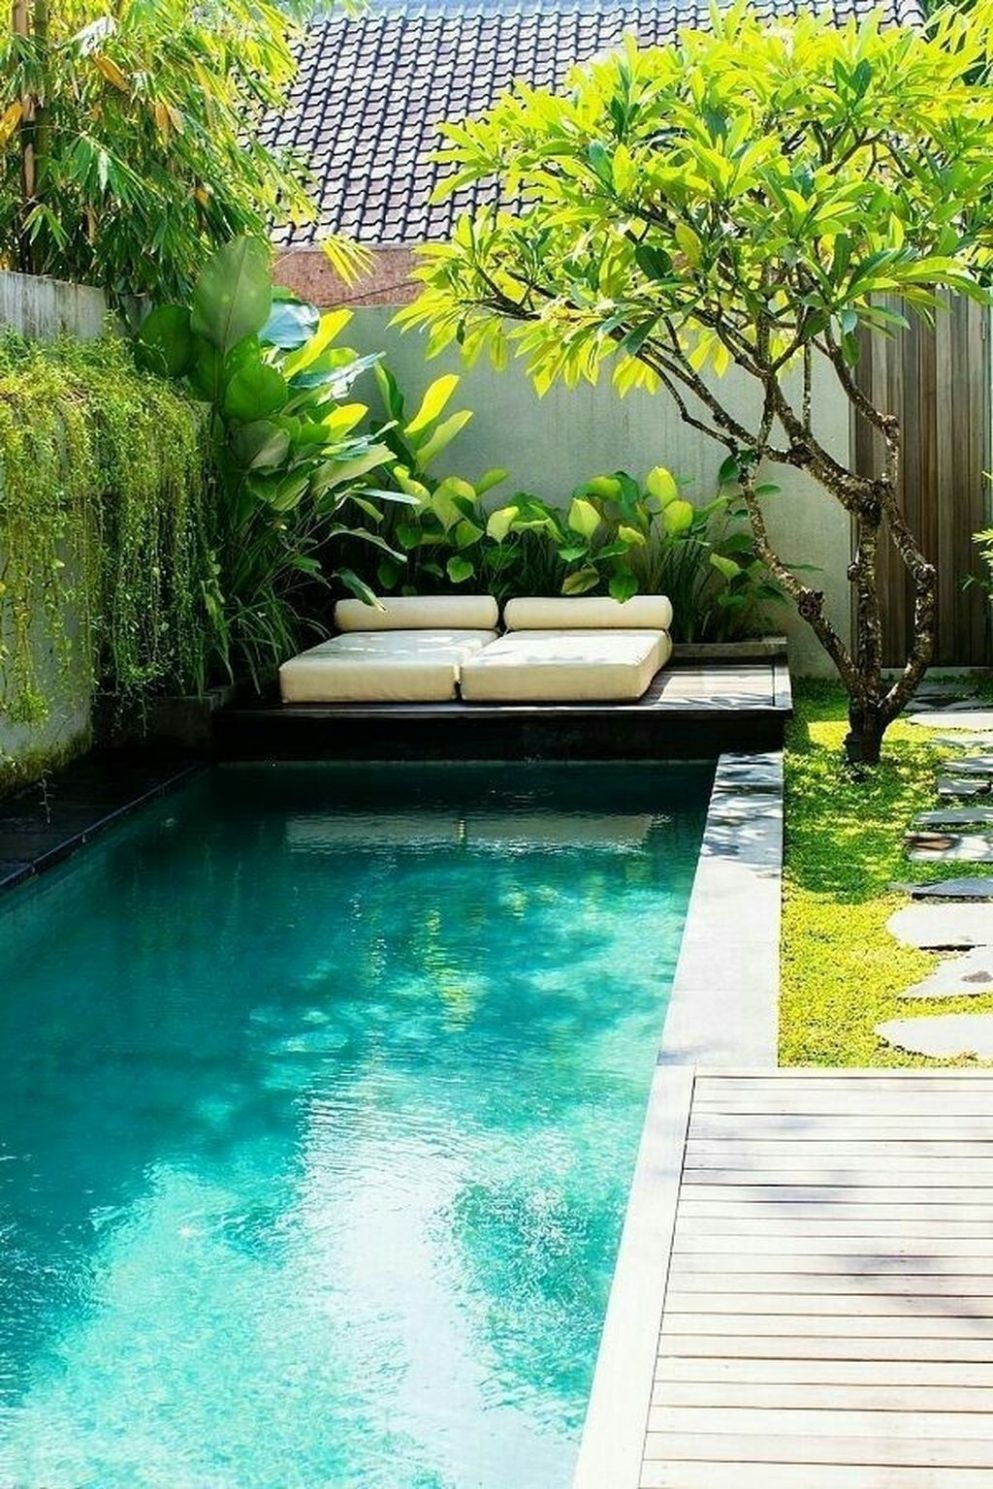 10+ Perfect Backyard Home Design Ideas With Swimming Pool | Petite ...